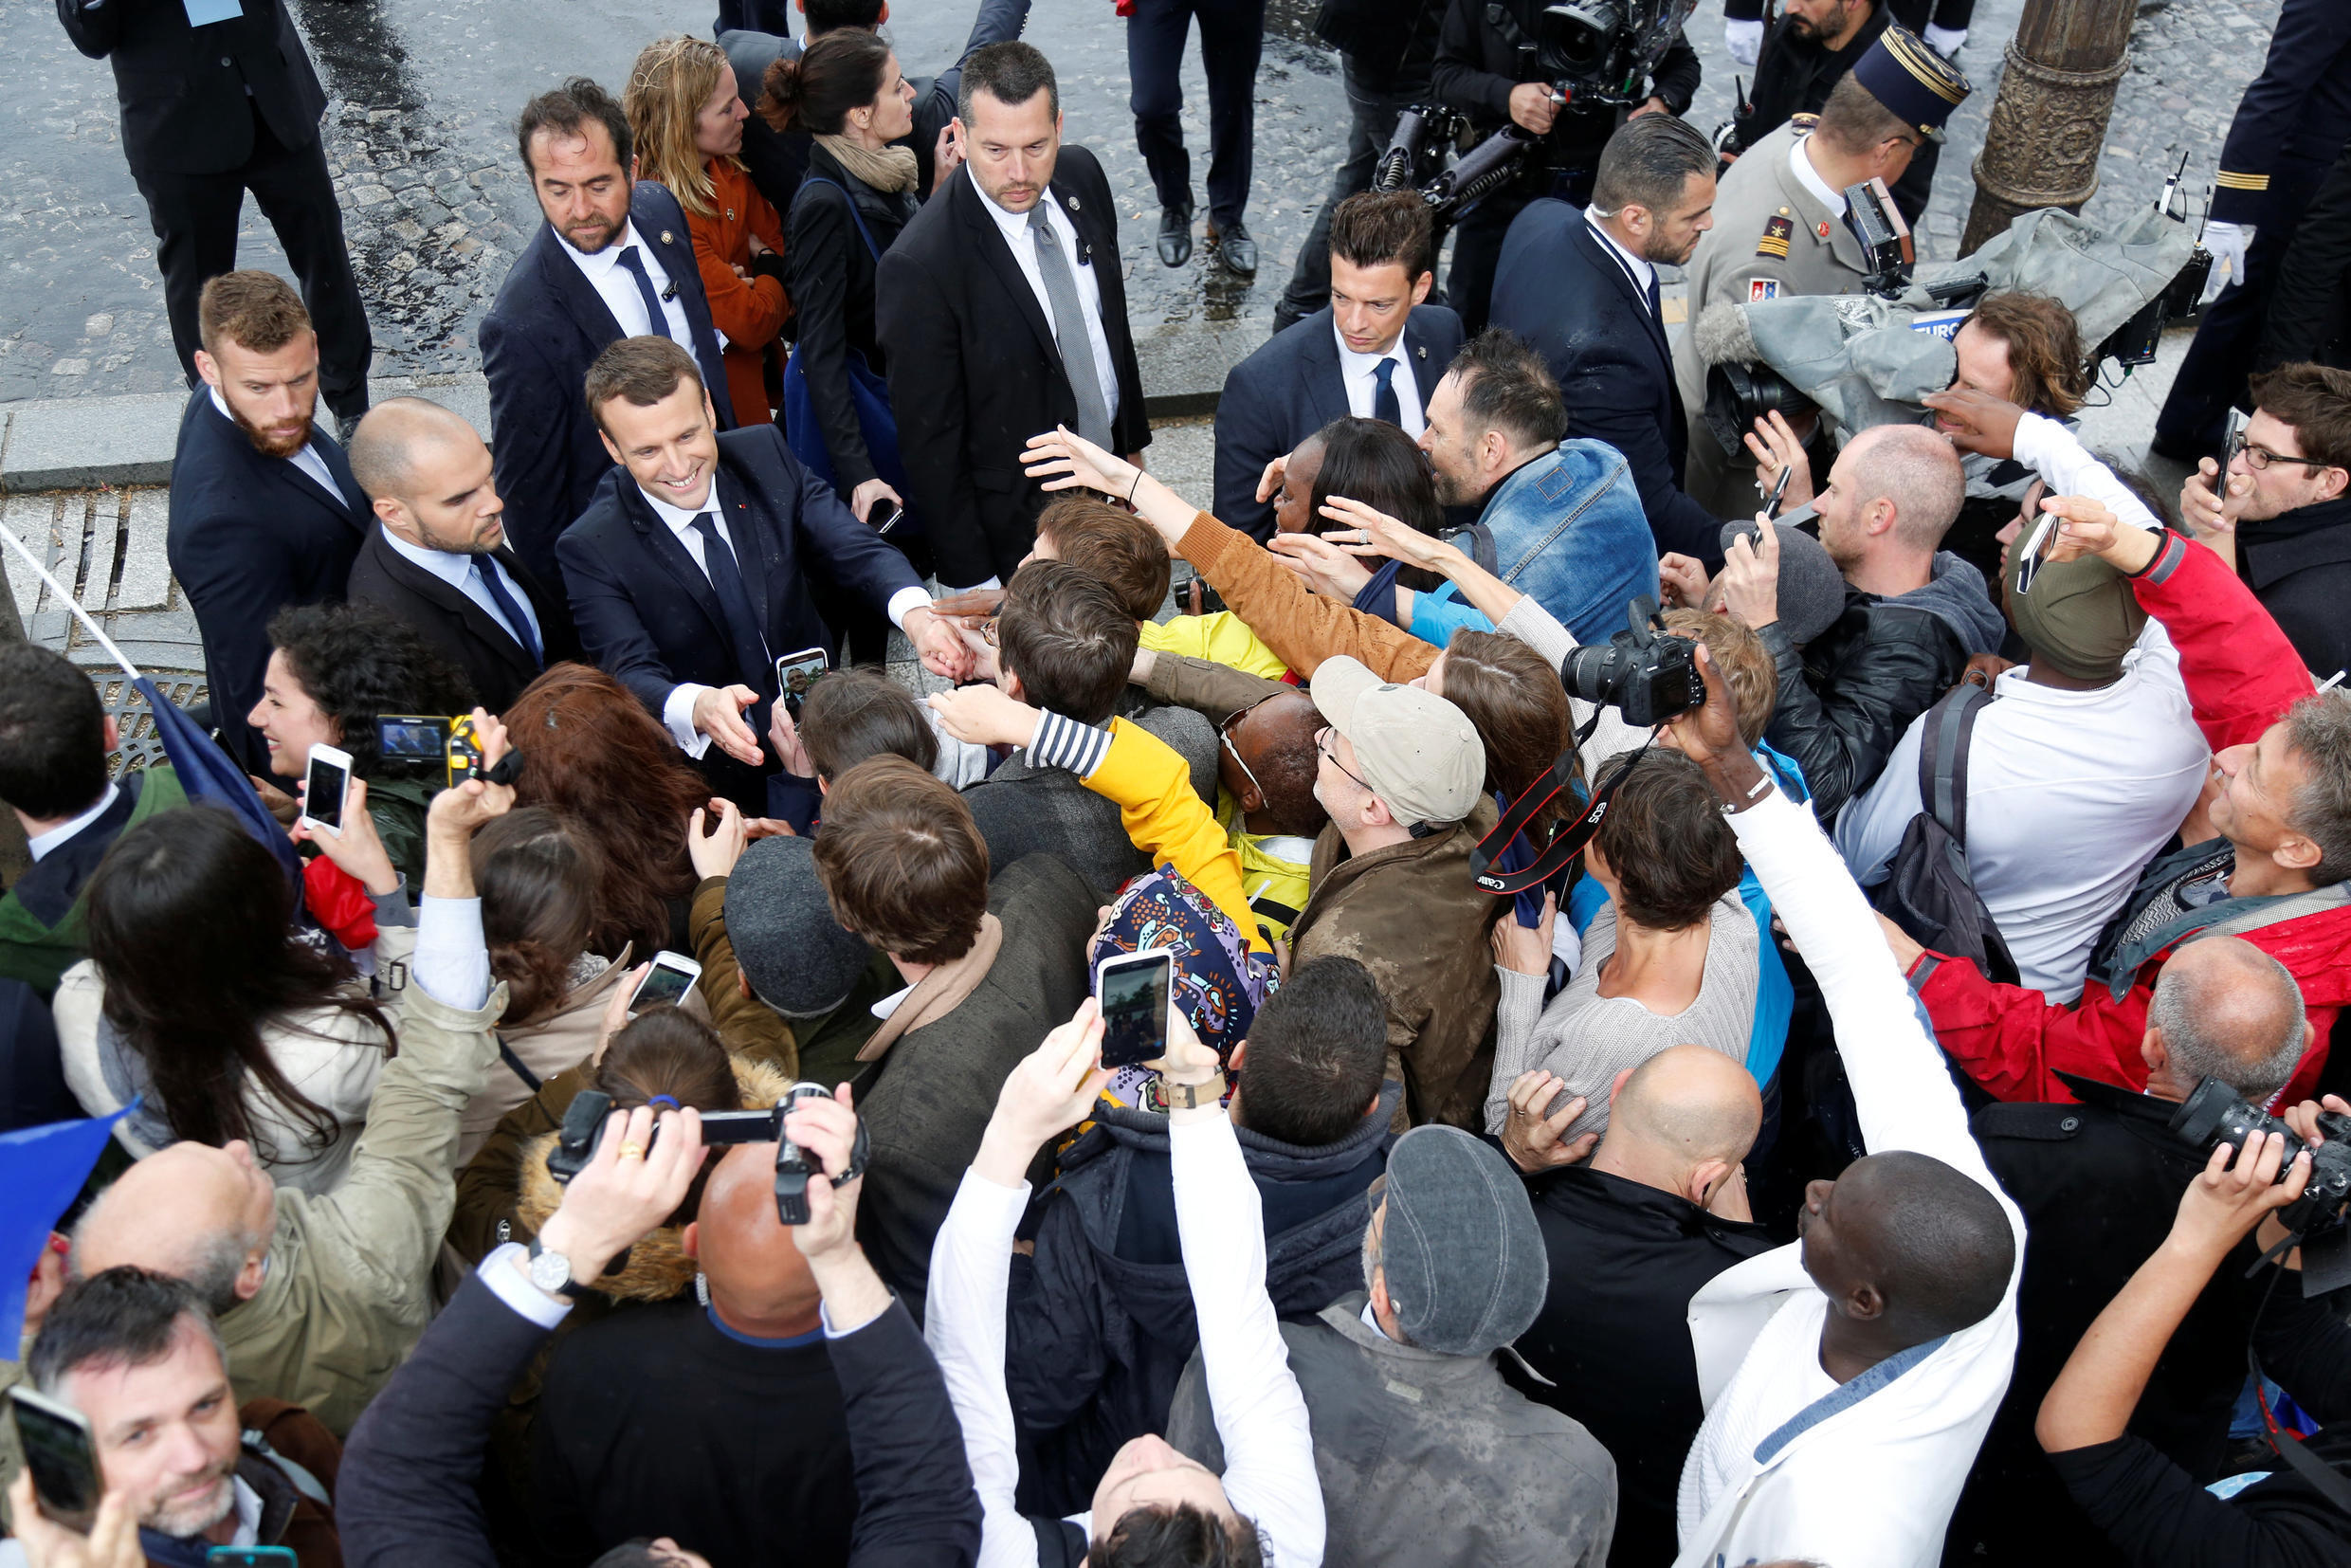 Macron greets the crowd at the Arc de Triomphe